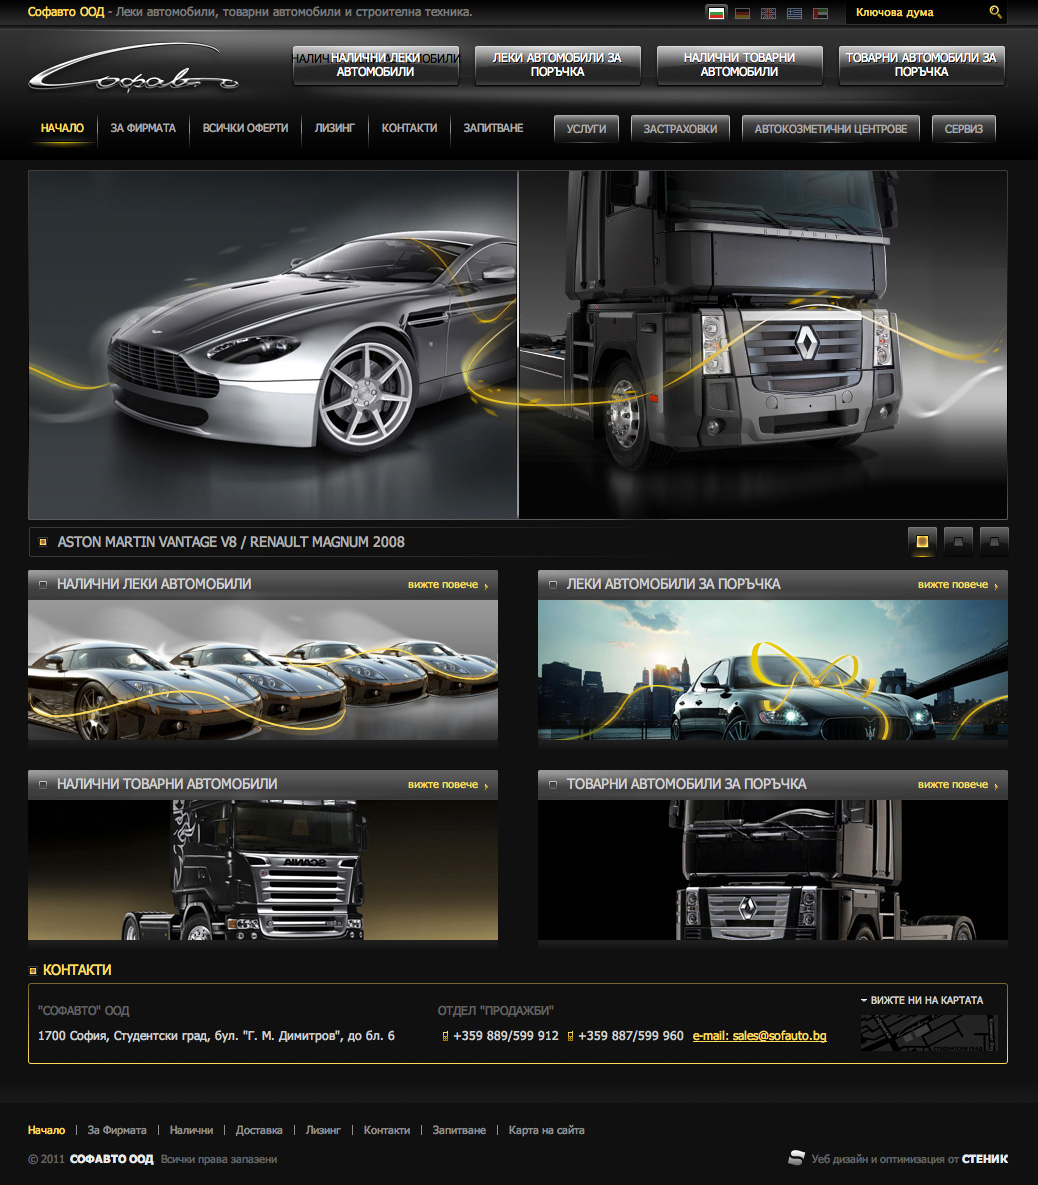 Website for Sofauto, Sofauto - Web Sites, Stenik